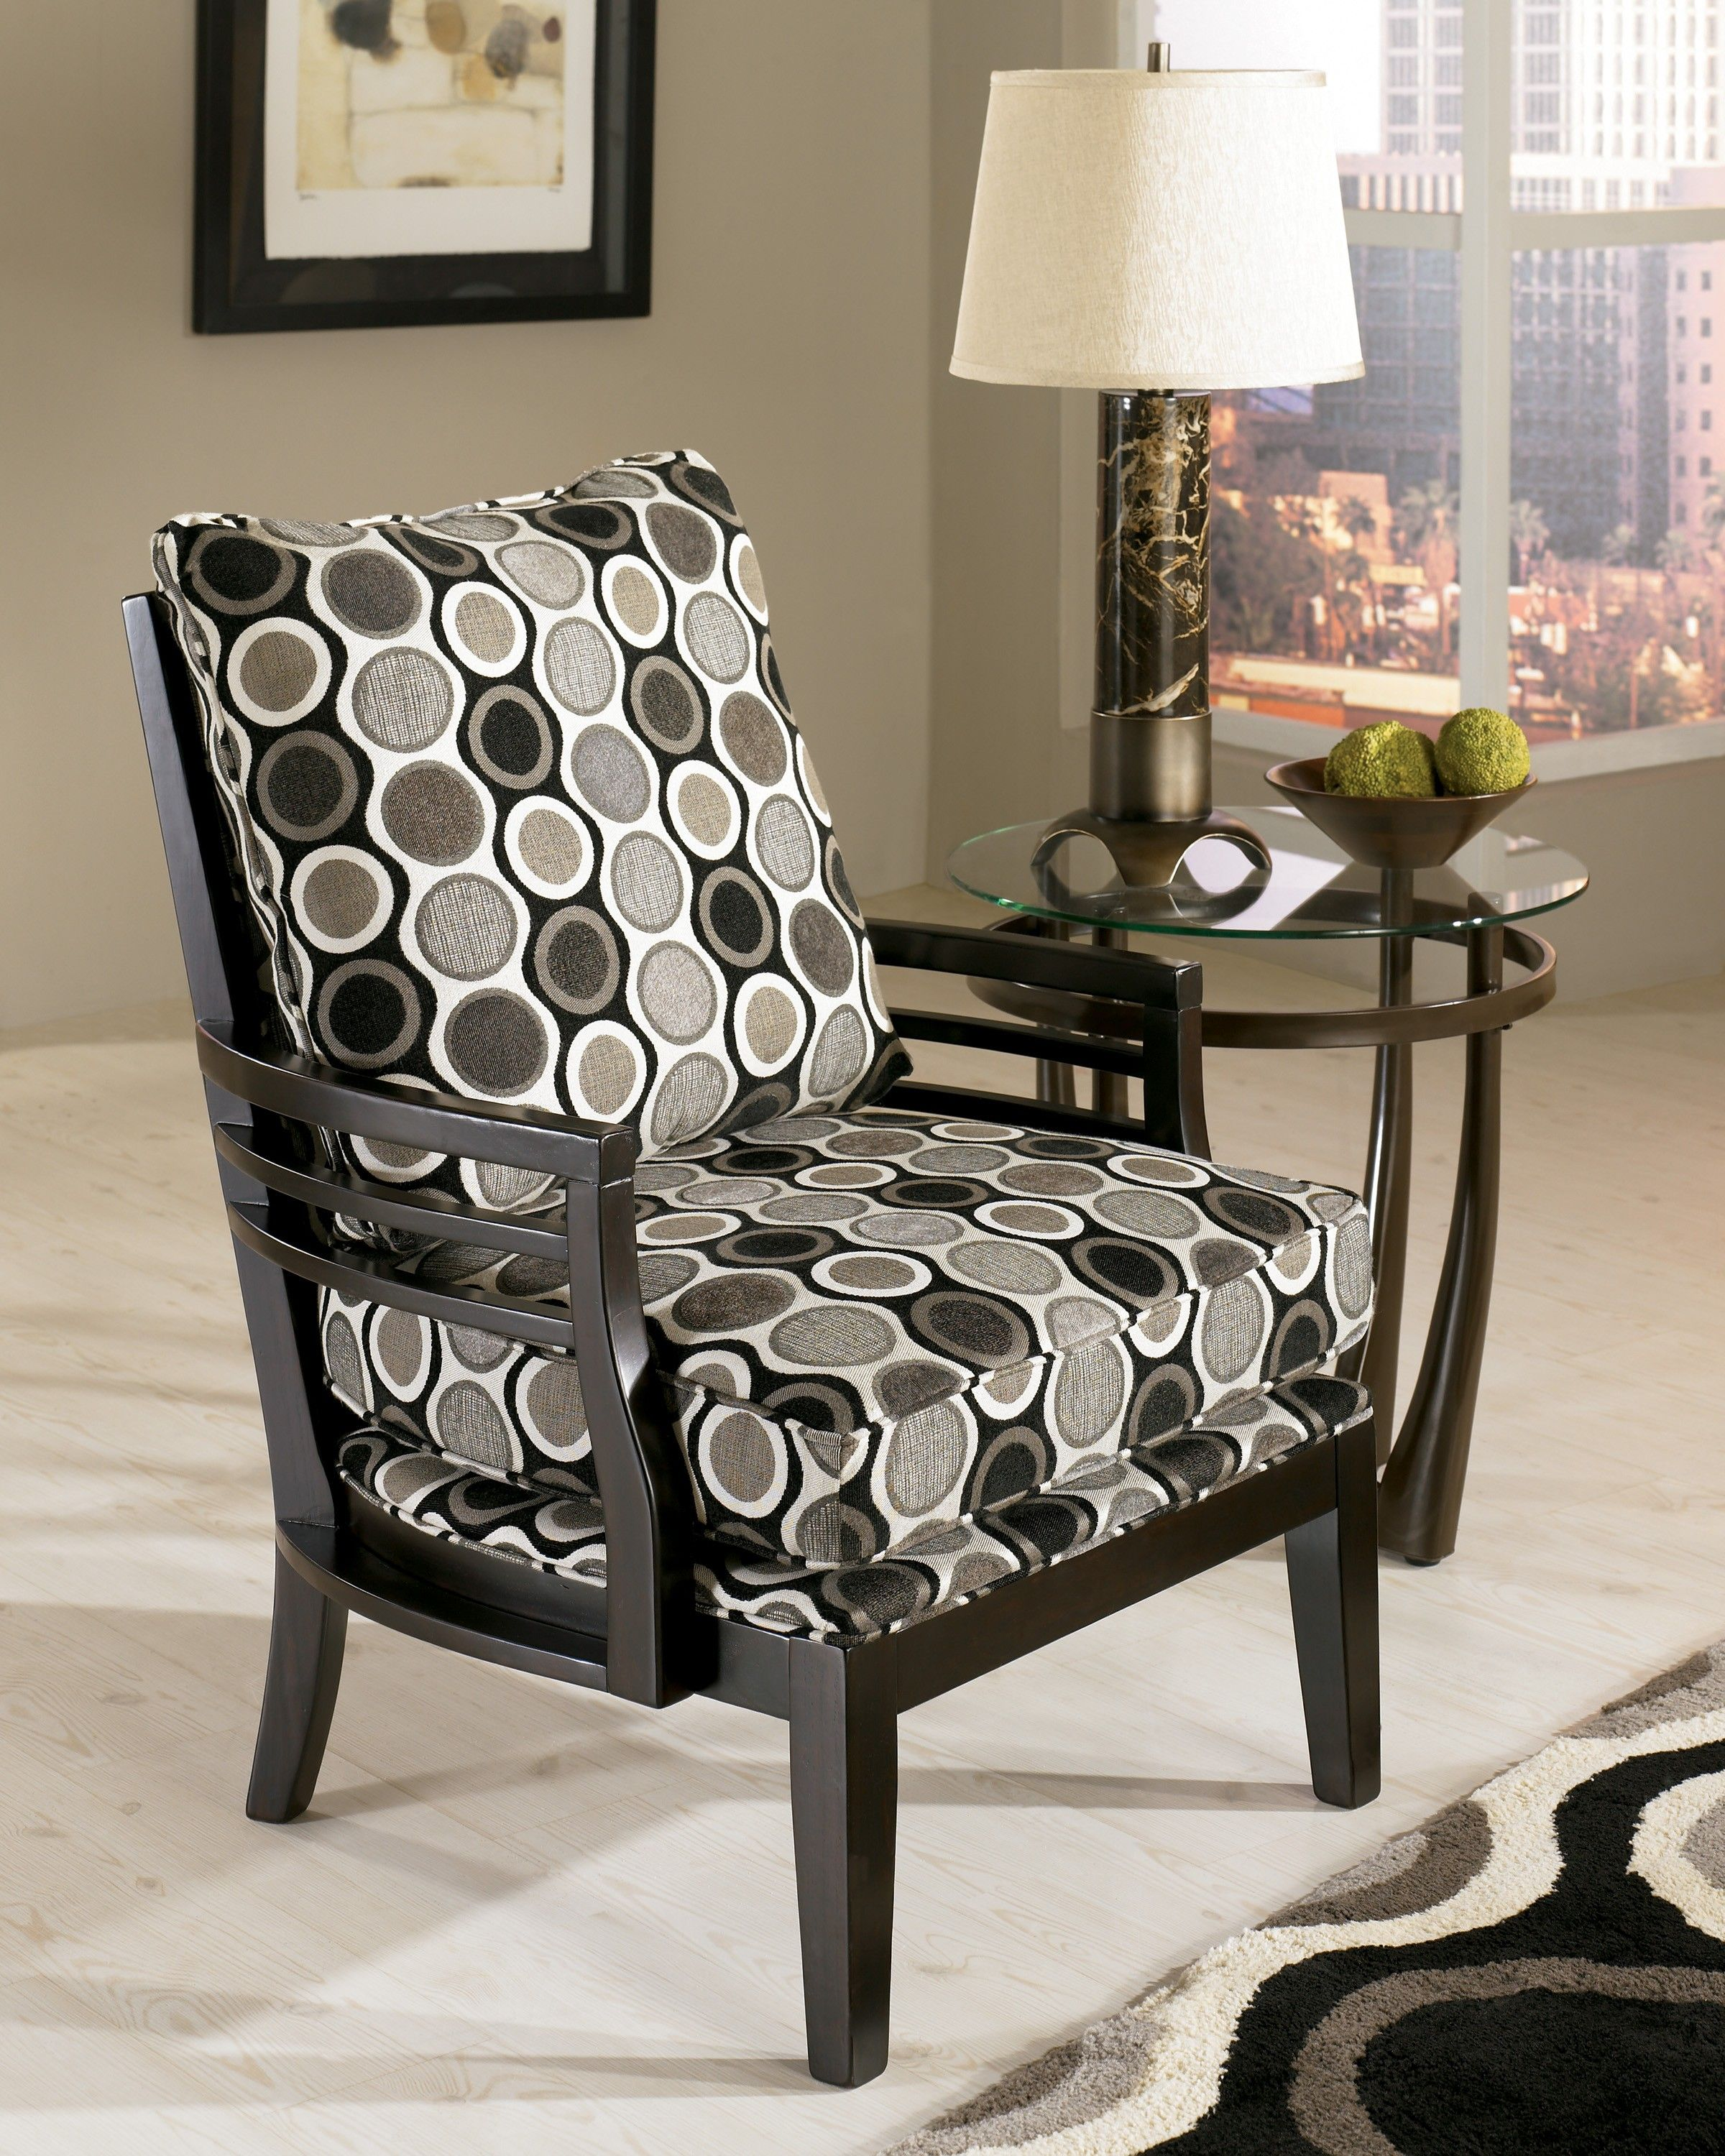 Interior Round Grey White Black Home Accent Chair Motif Matched Entrancing Living Room Chairs Under 100 Design Ideas